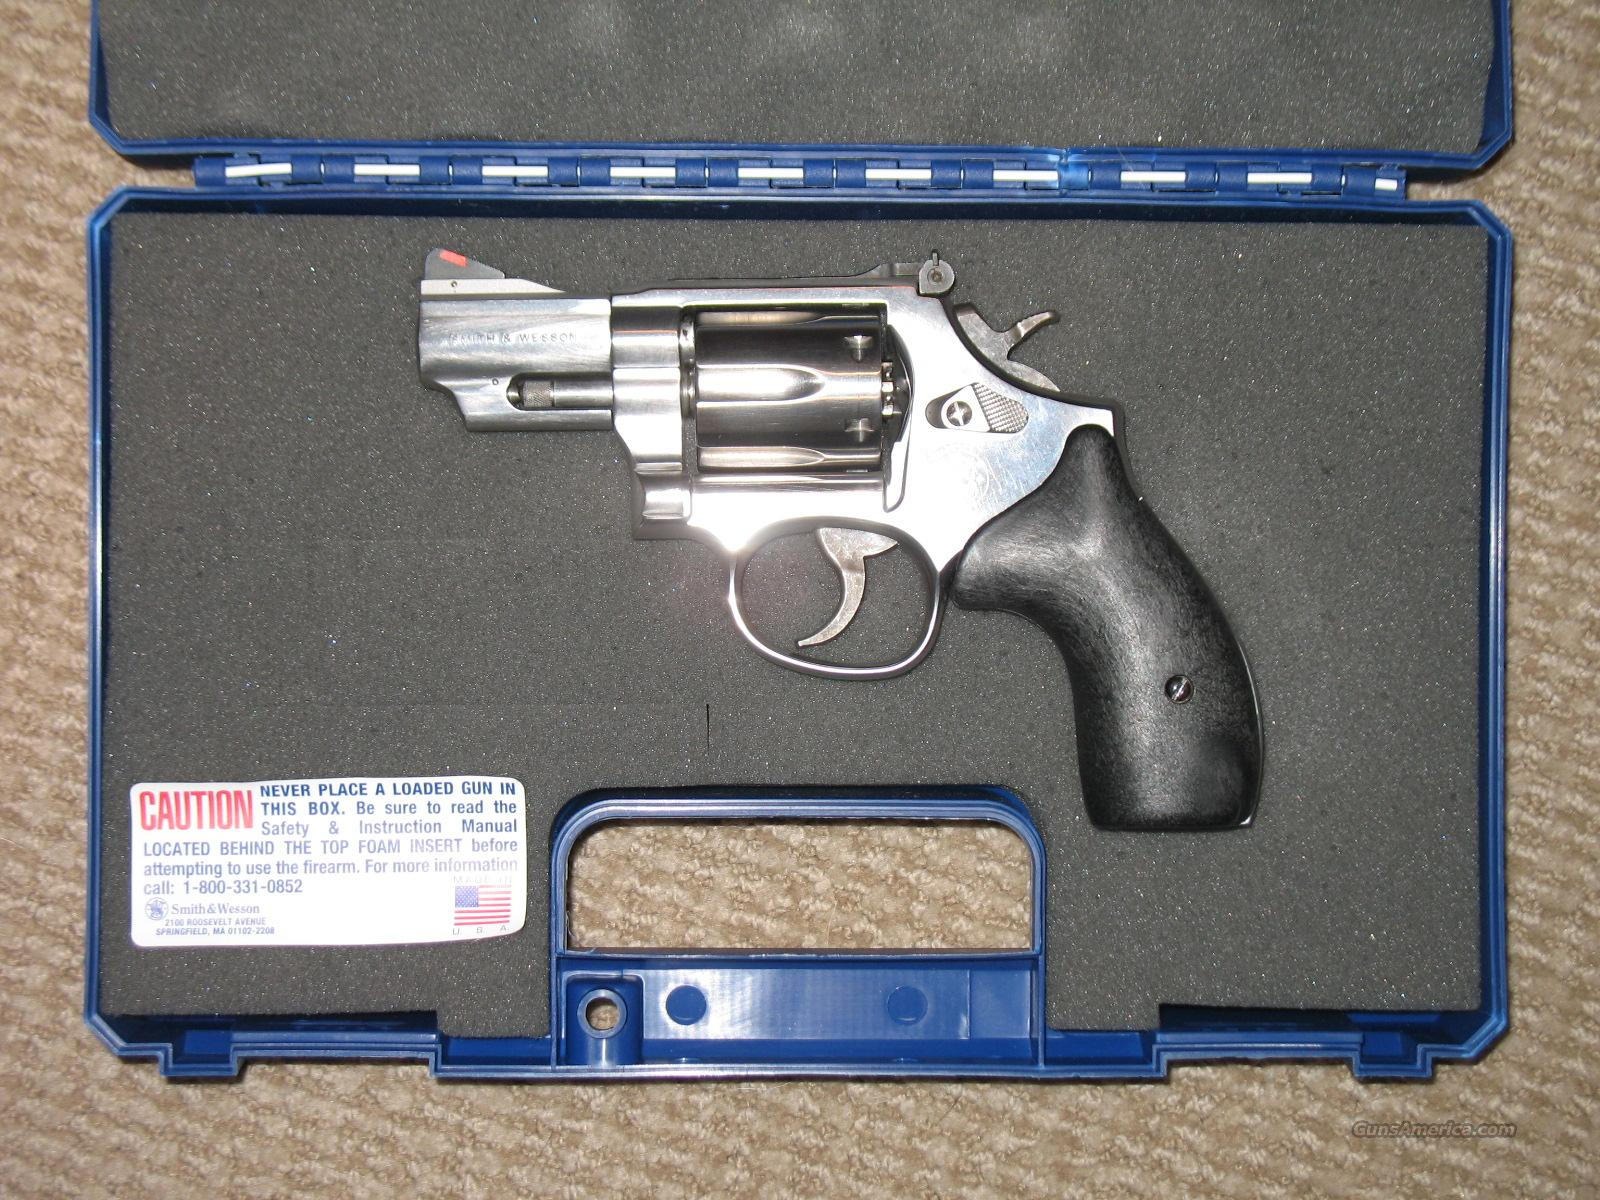 "Smith & Wesson Model 66-5 .357 Mag 2 1/2"" Bbl Stainless  Guns > Pistols > Smith & Wesson Revolvers > Full Frame Revolver"